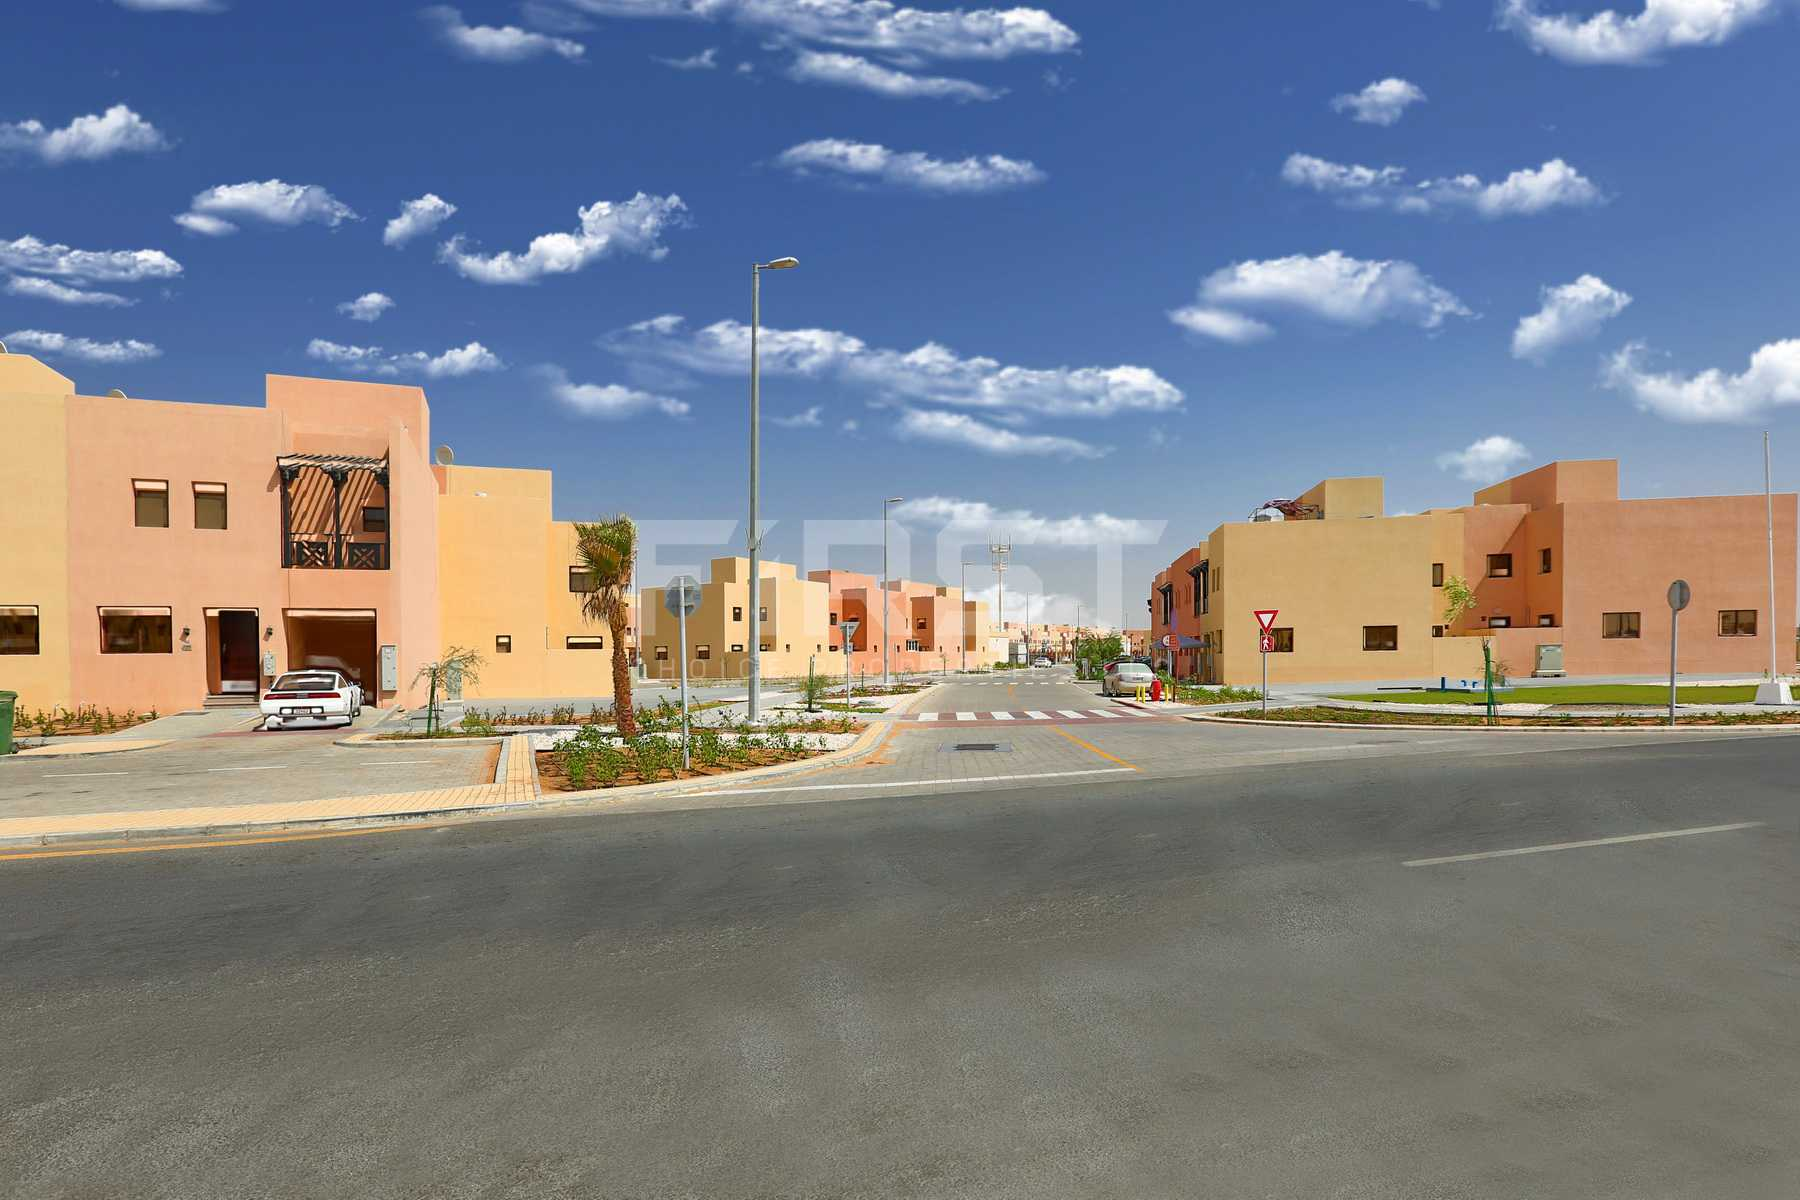 External Photo of Hydra Village Abu Dhabi UAE (17).jpg